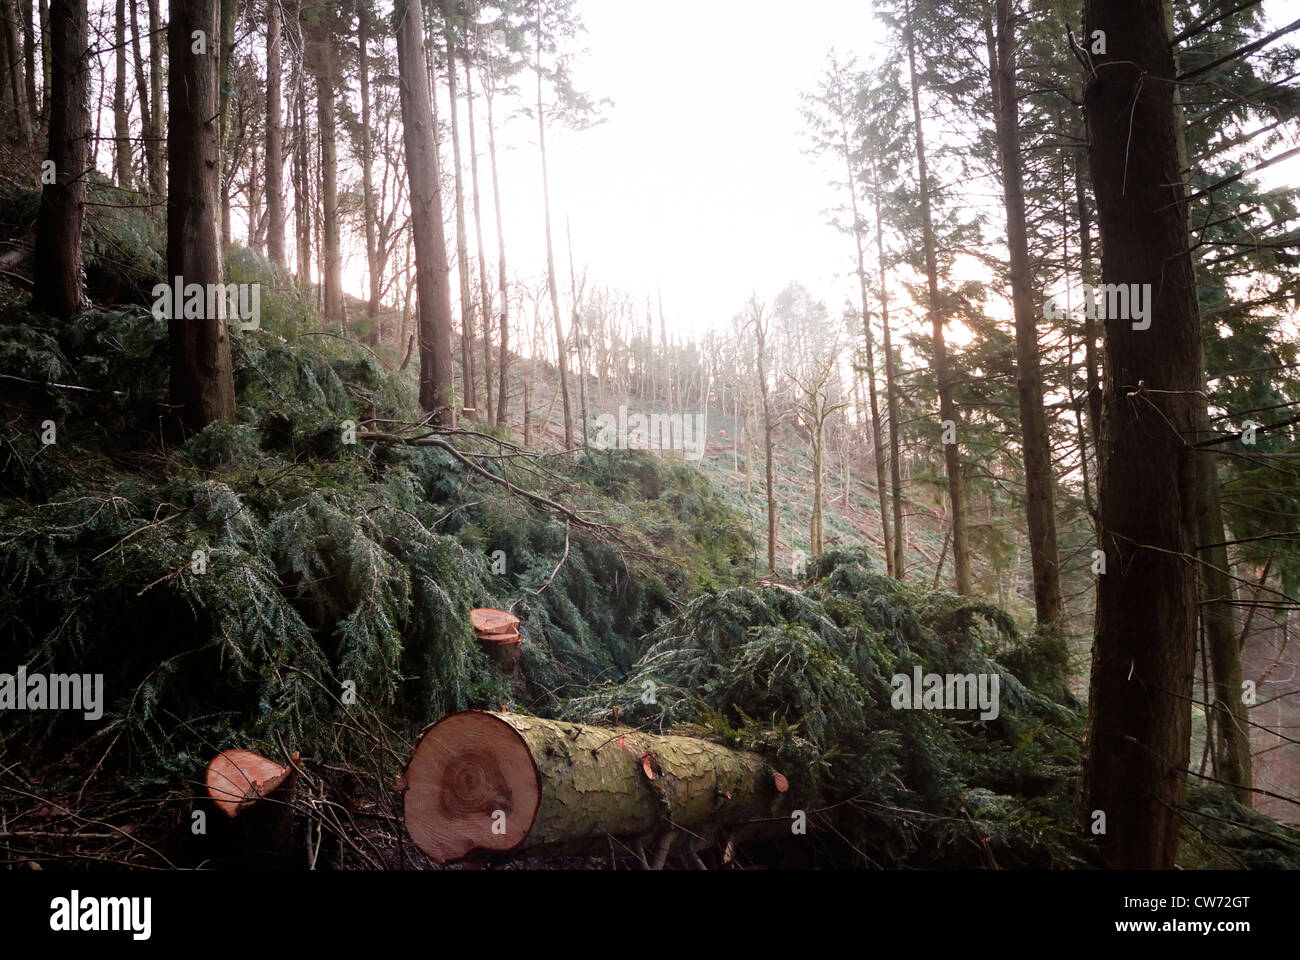 Western Hemlock conifer trees being cleared from an Ancient Woodland Site, Wales. - Stock Image